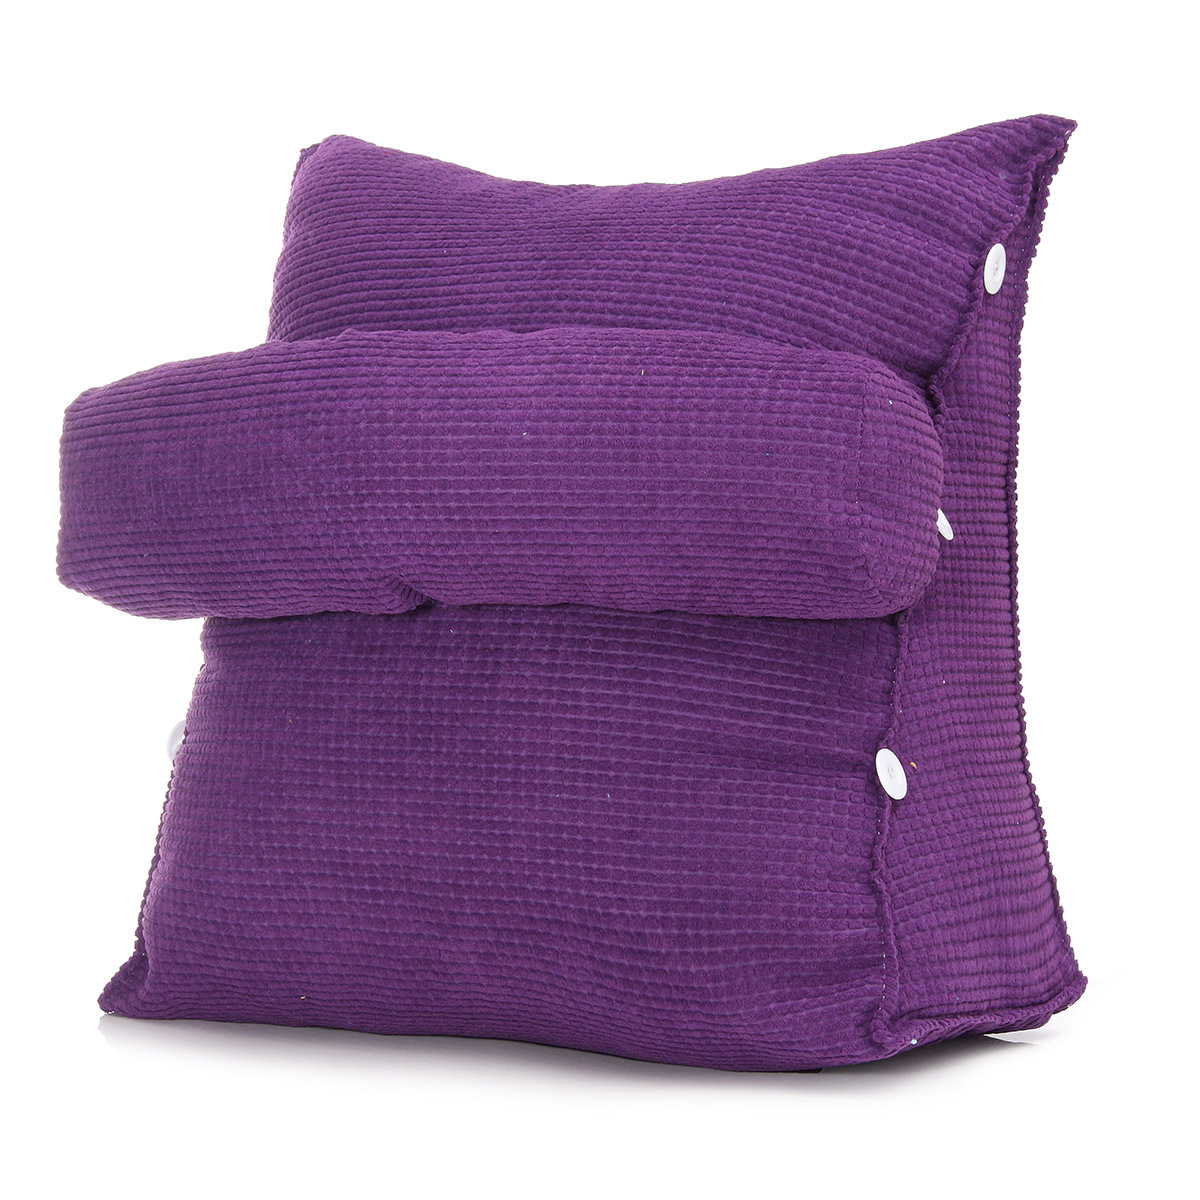 Sofa Bed Office Chair Cushion Adjule Neck Support